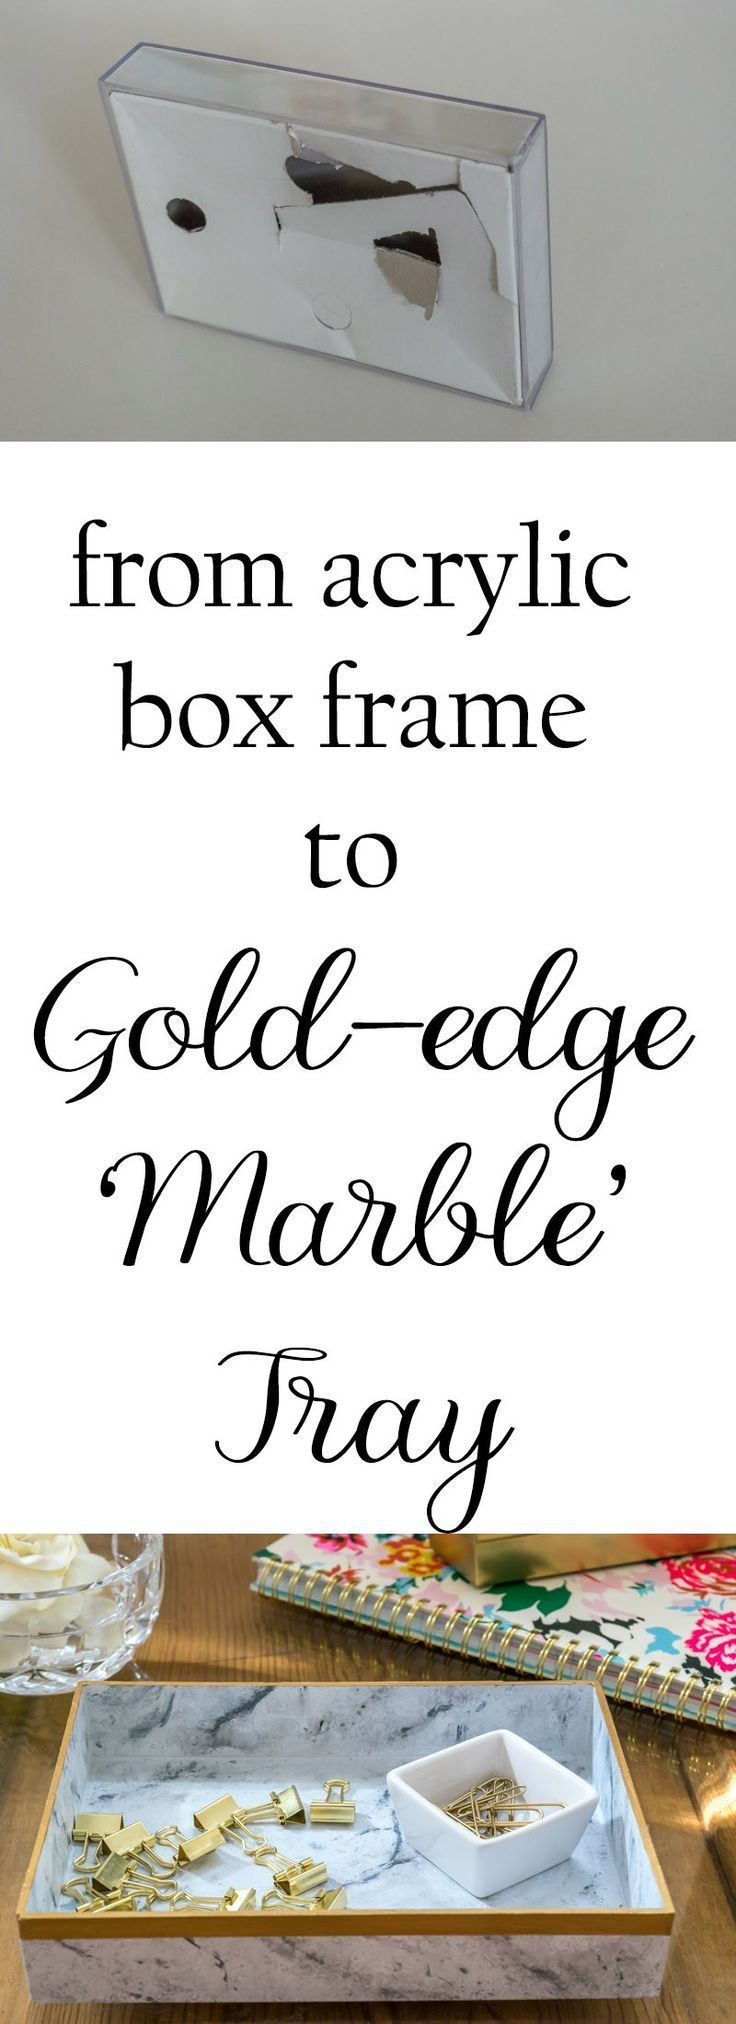 Turn an inexpensive acrylic box frame into a great 'marble' tray for acc...